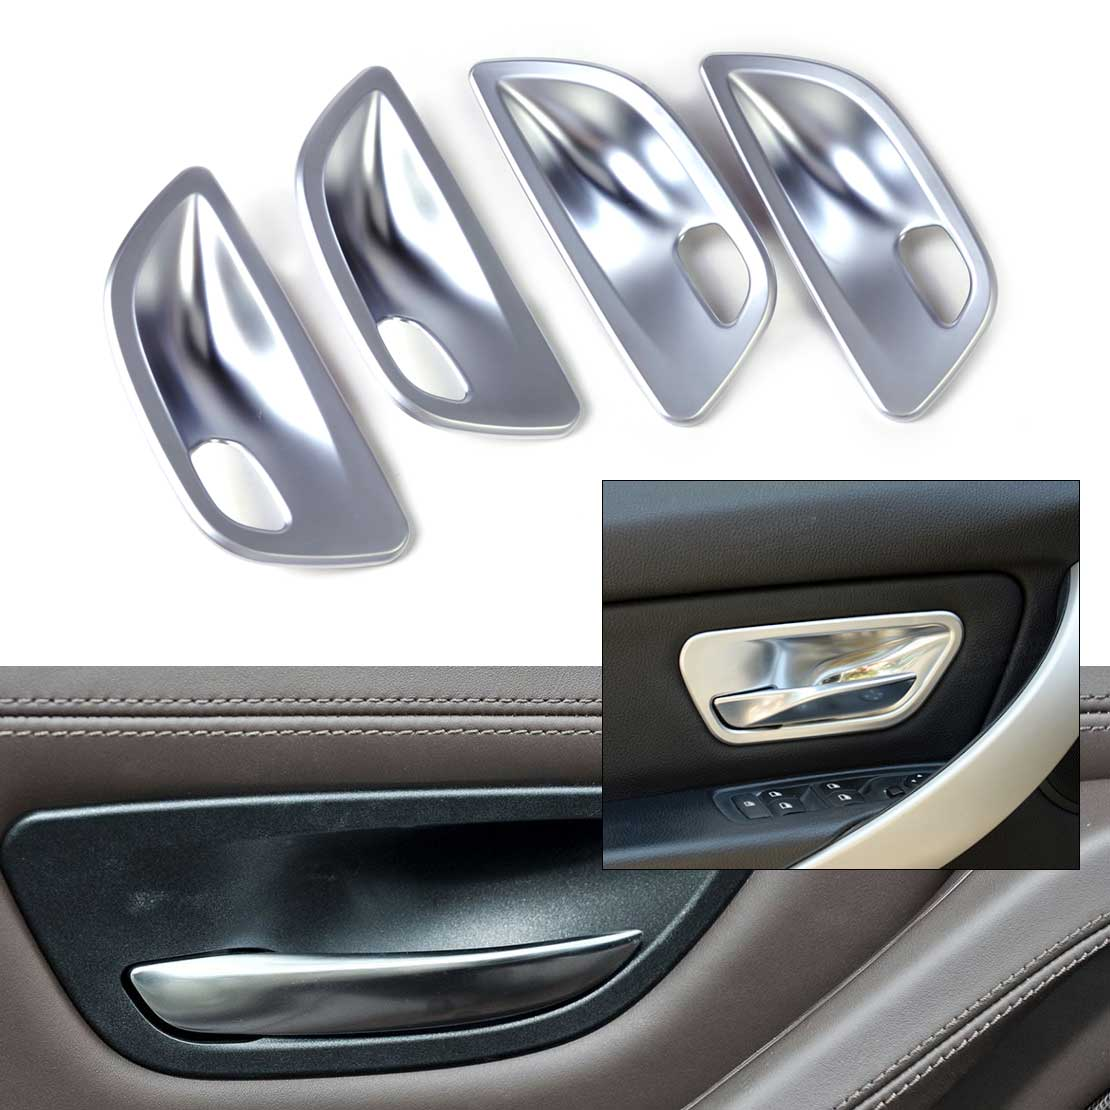 DWCX car styling ABS Chrome Interior Door Handle Cup Bowl Cover Trim for BMW 5 Series F10 Sedan 2011 2012 2013 2014 2015 2016 6pcs abs chrome interior inner door side handle bowl cover trim for 2011 2012 2013 2014 2015 2016 porsche cayenne car styling